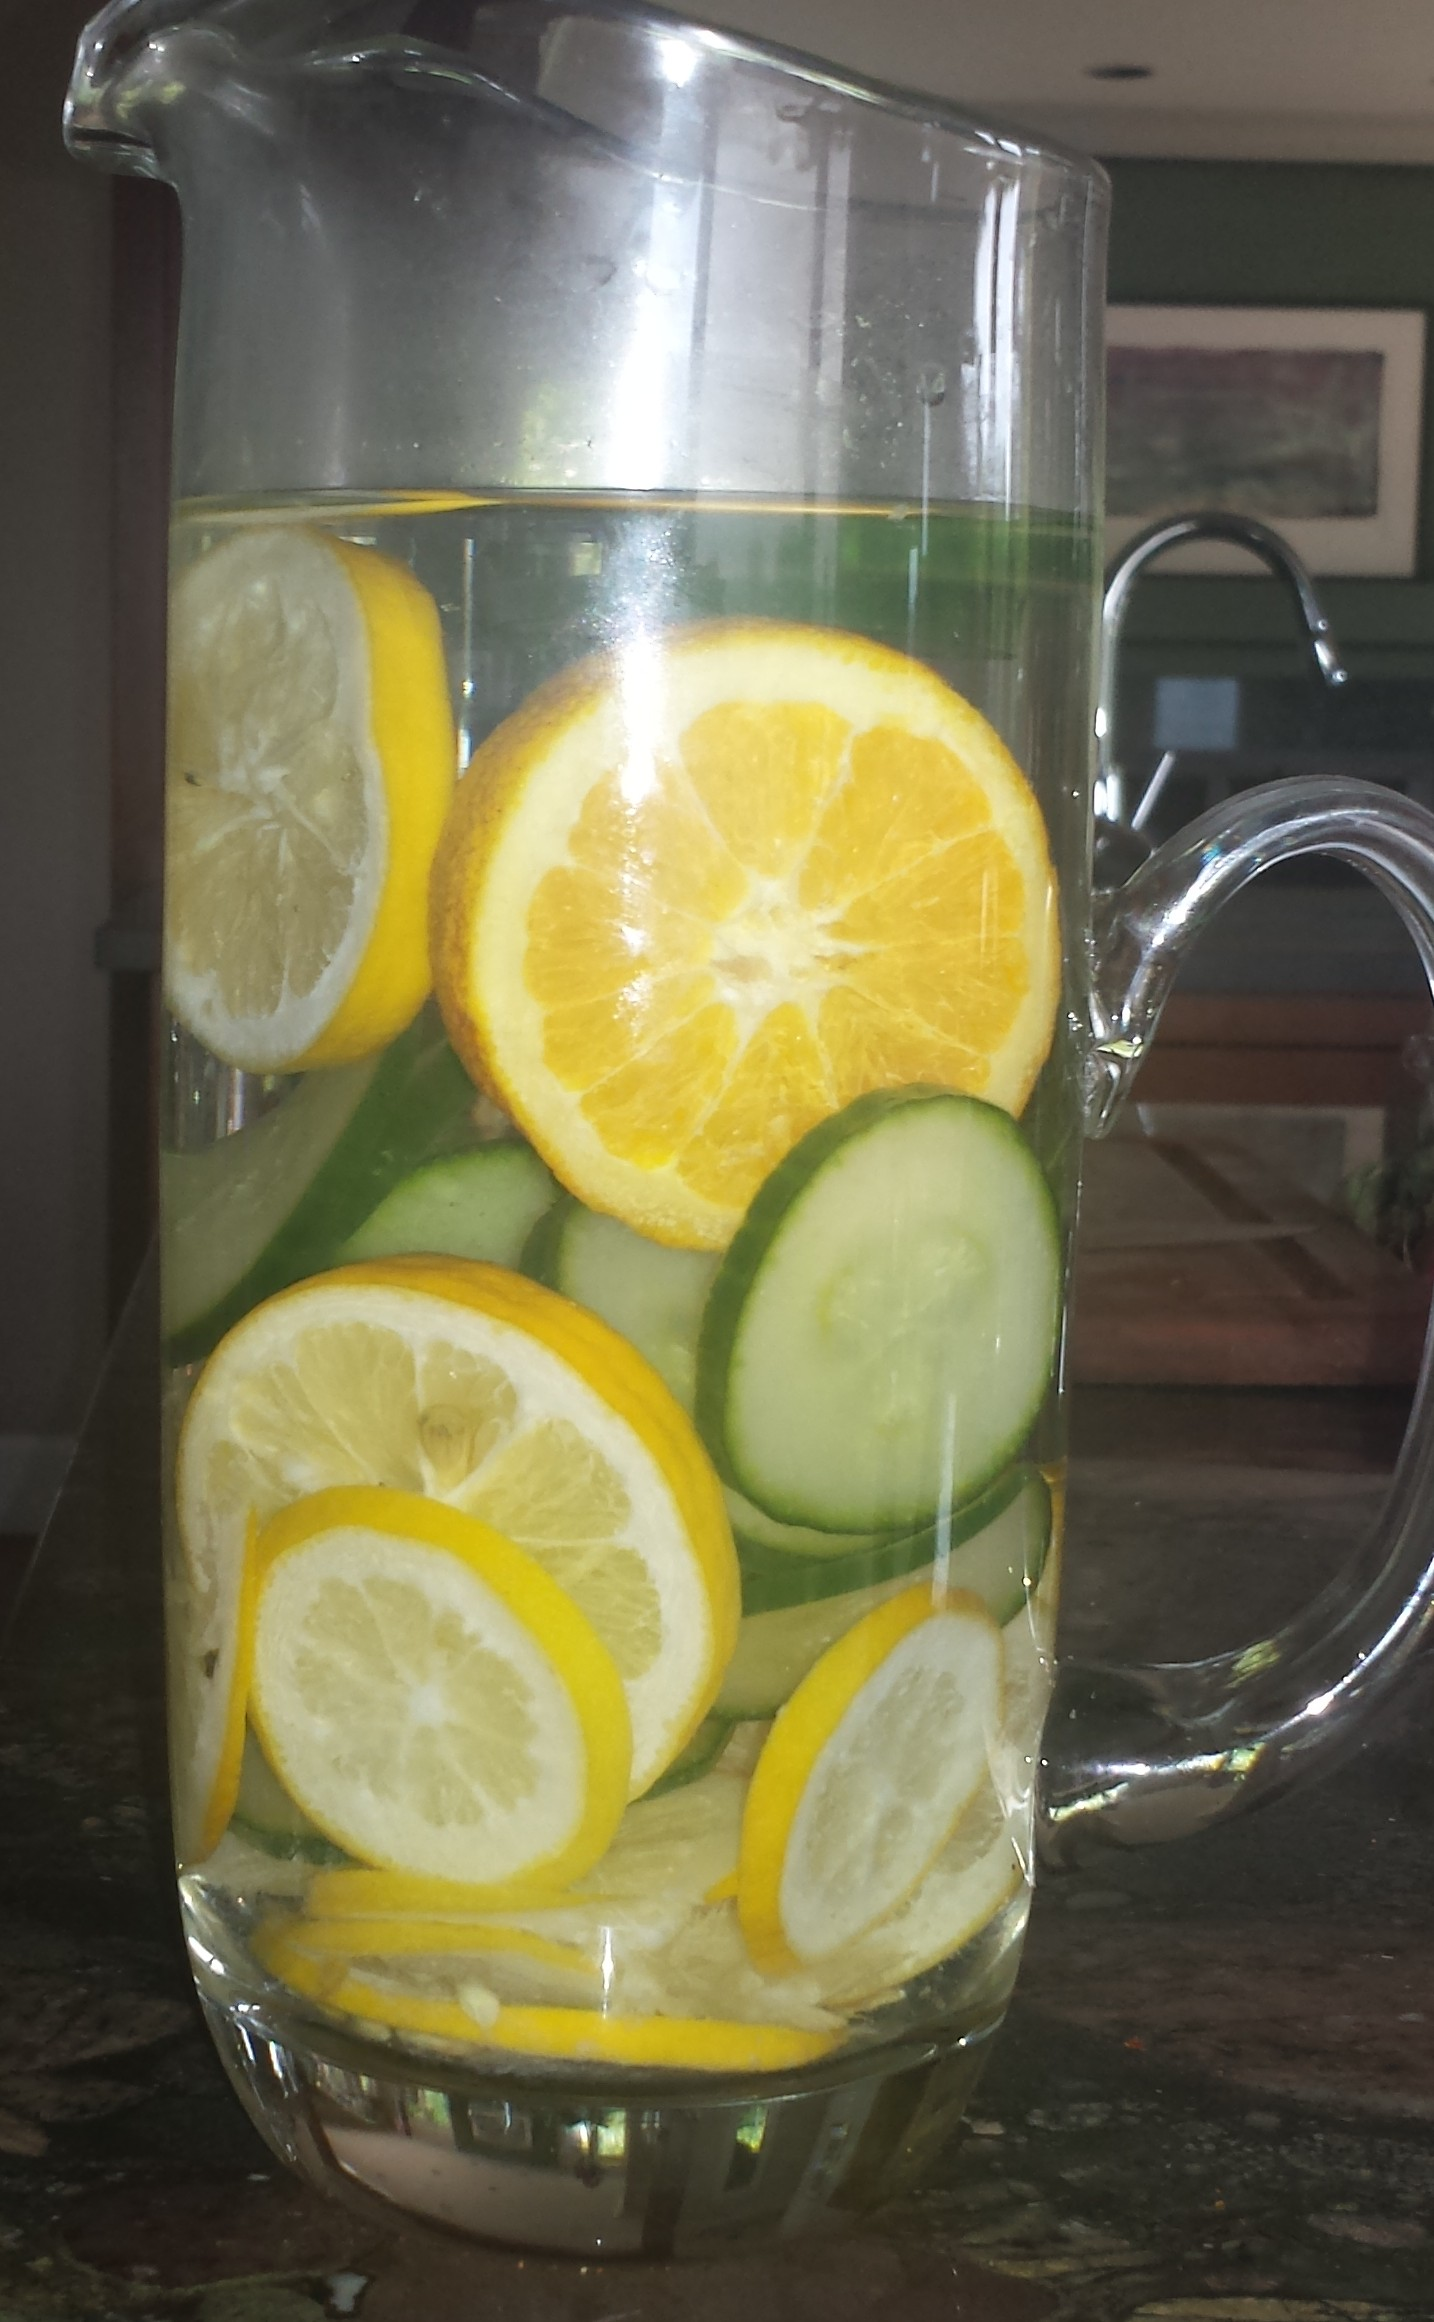 Detox Water with Lemon, Cucumber, and patton-outlet.tk water. *I've had some people ask about side effects from drinking Lemon water aka Detox Water. The Live Strong Website has a great article about drinking too much lemon water and you should read it before drinking.